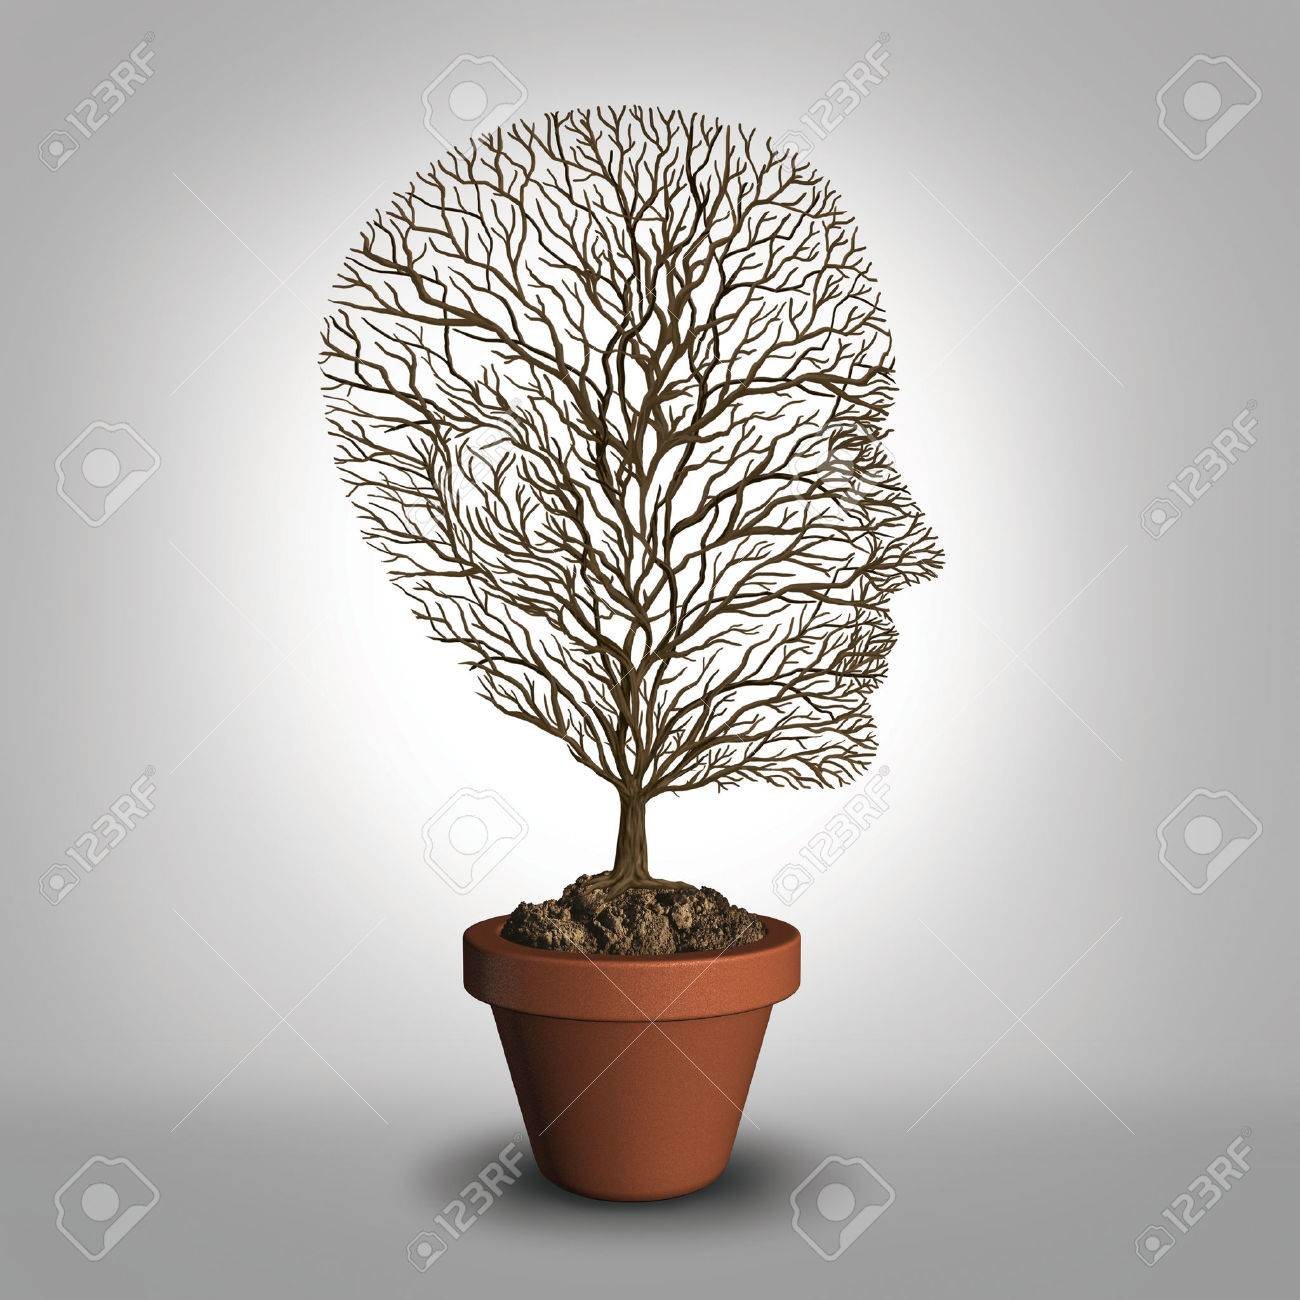 work burnout and job stress concept due to physical and emotional stock photo work burnout and job stress concept due to physical and emotional exhaustion from overwork or career anxiety as an empty tree shaped as a